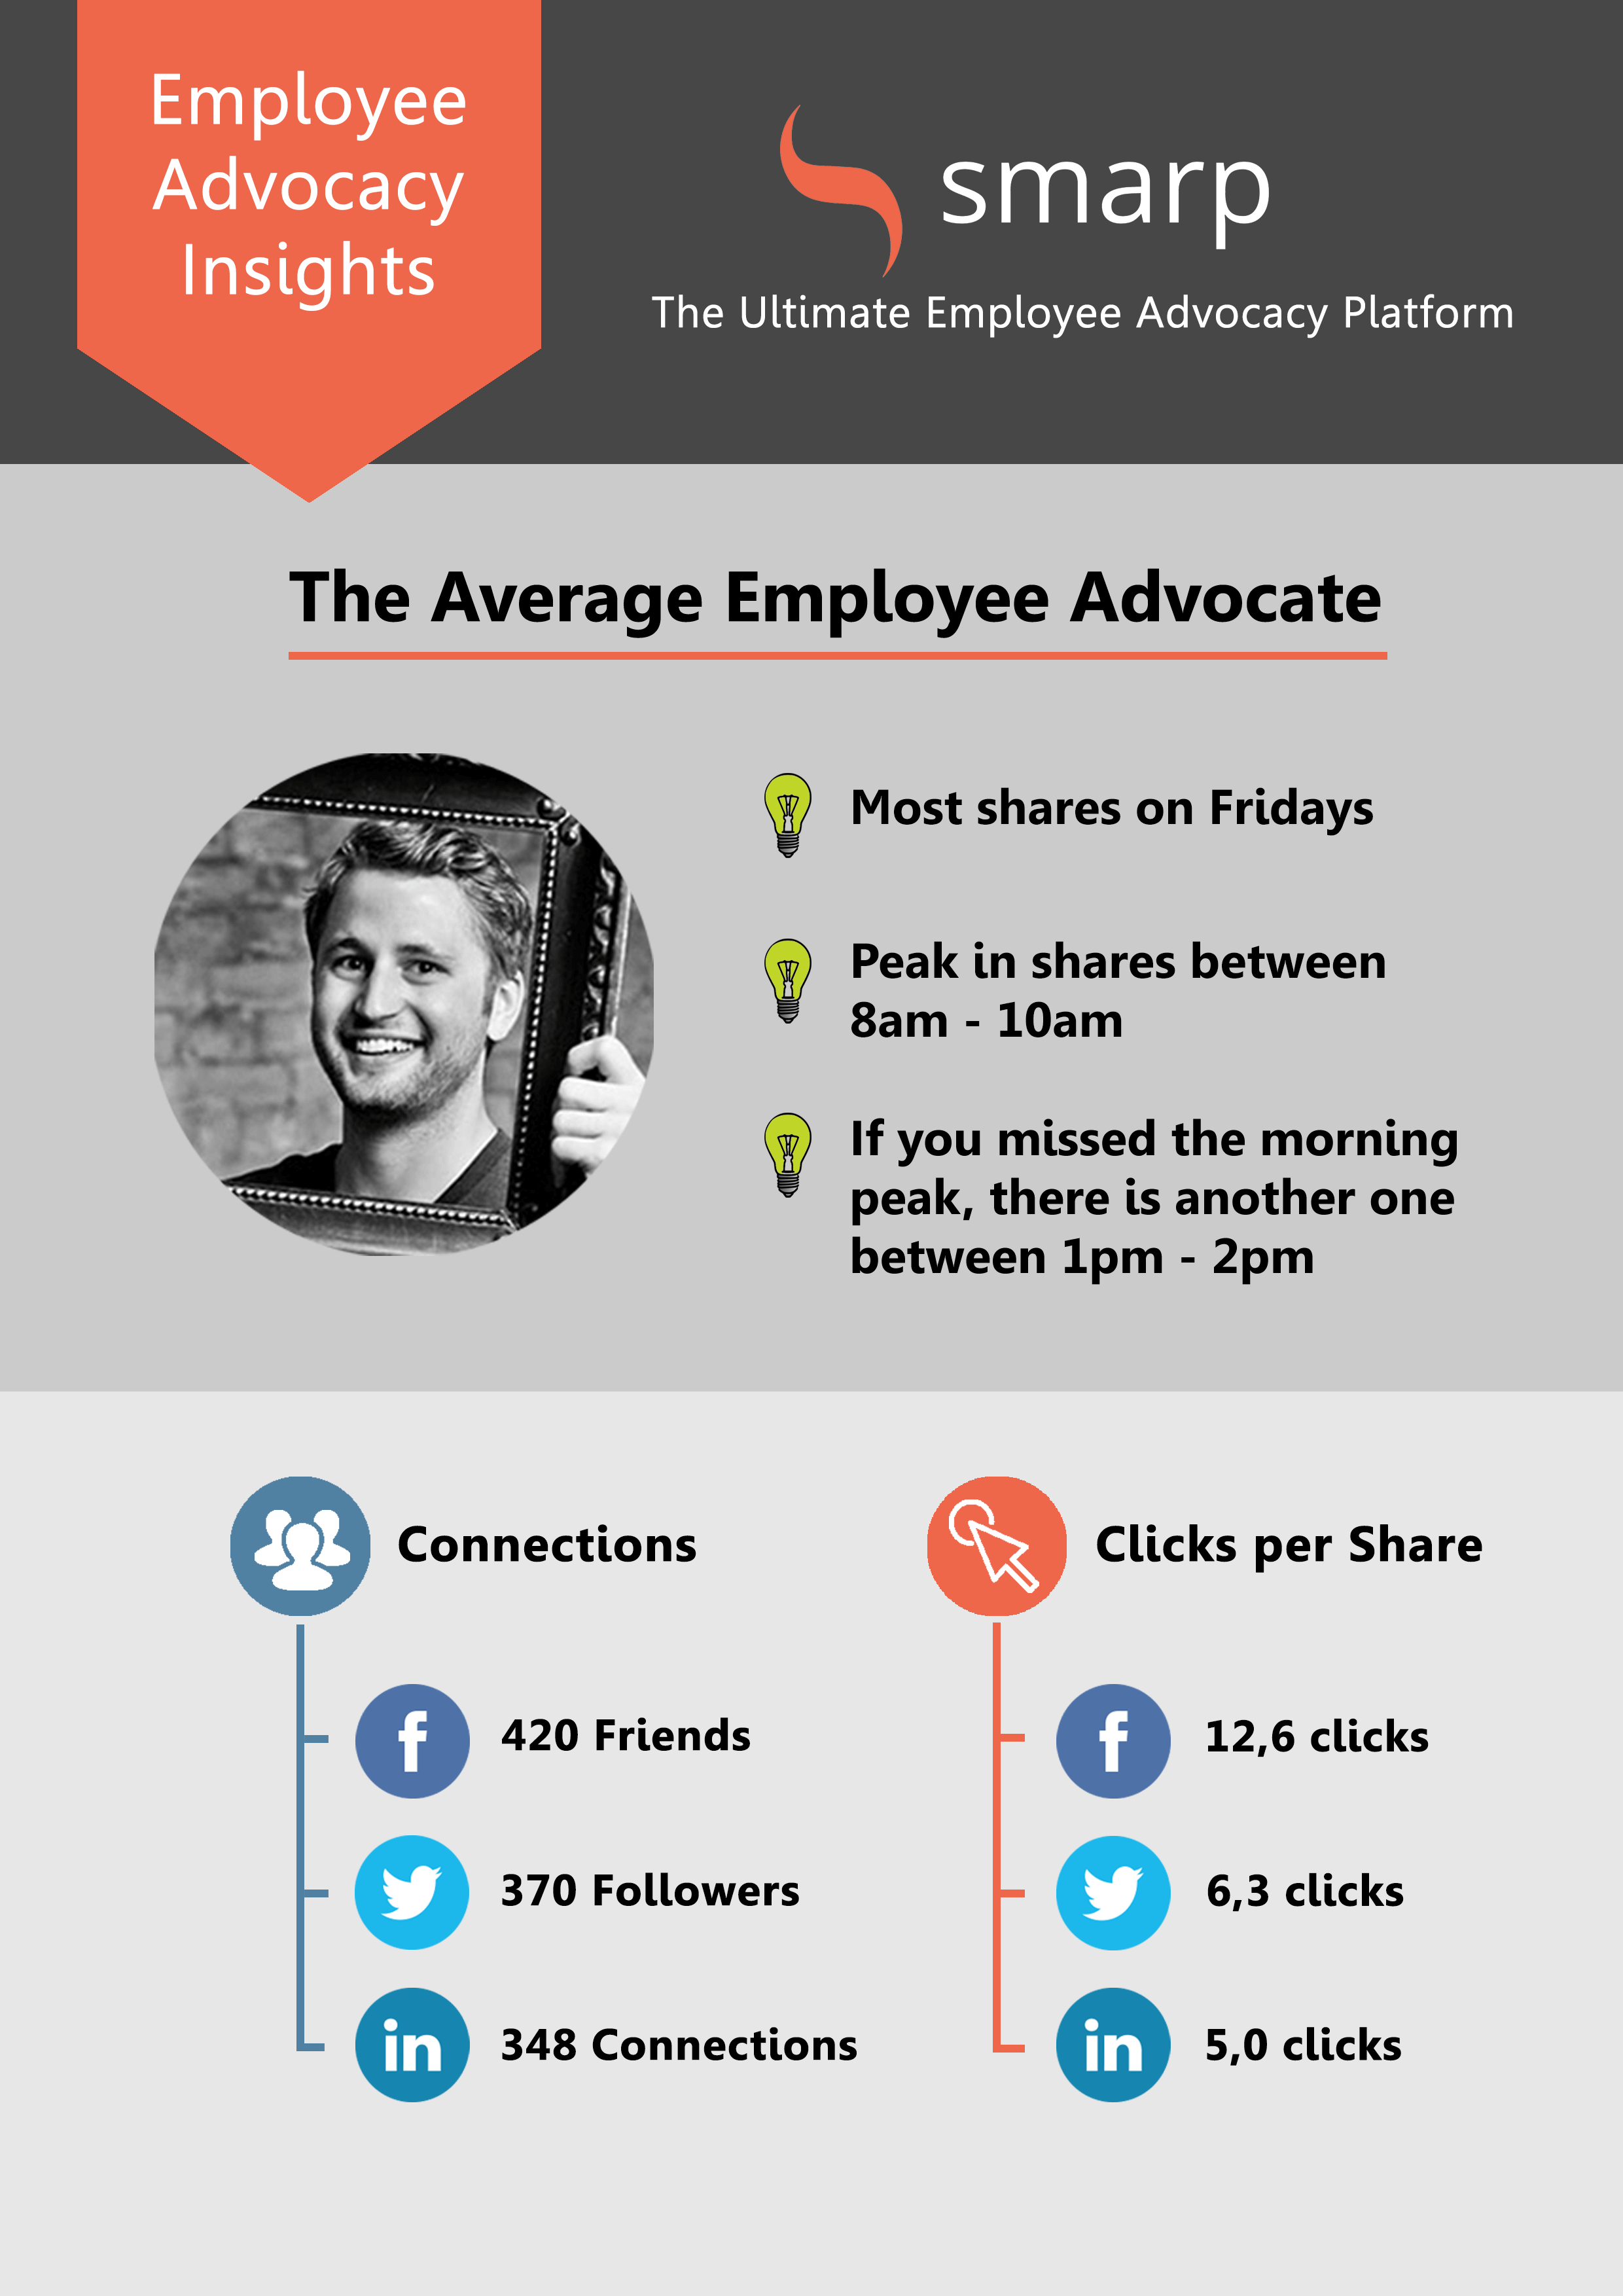 Employee Advocacy Insights - The Average Employee Advocate